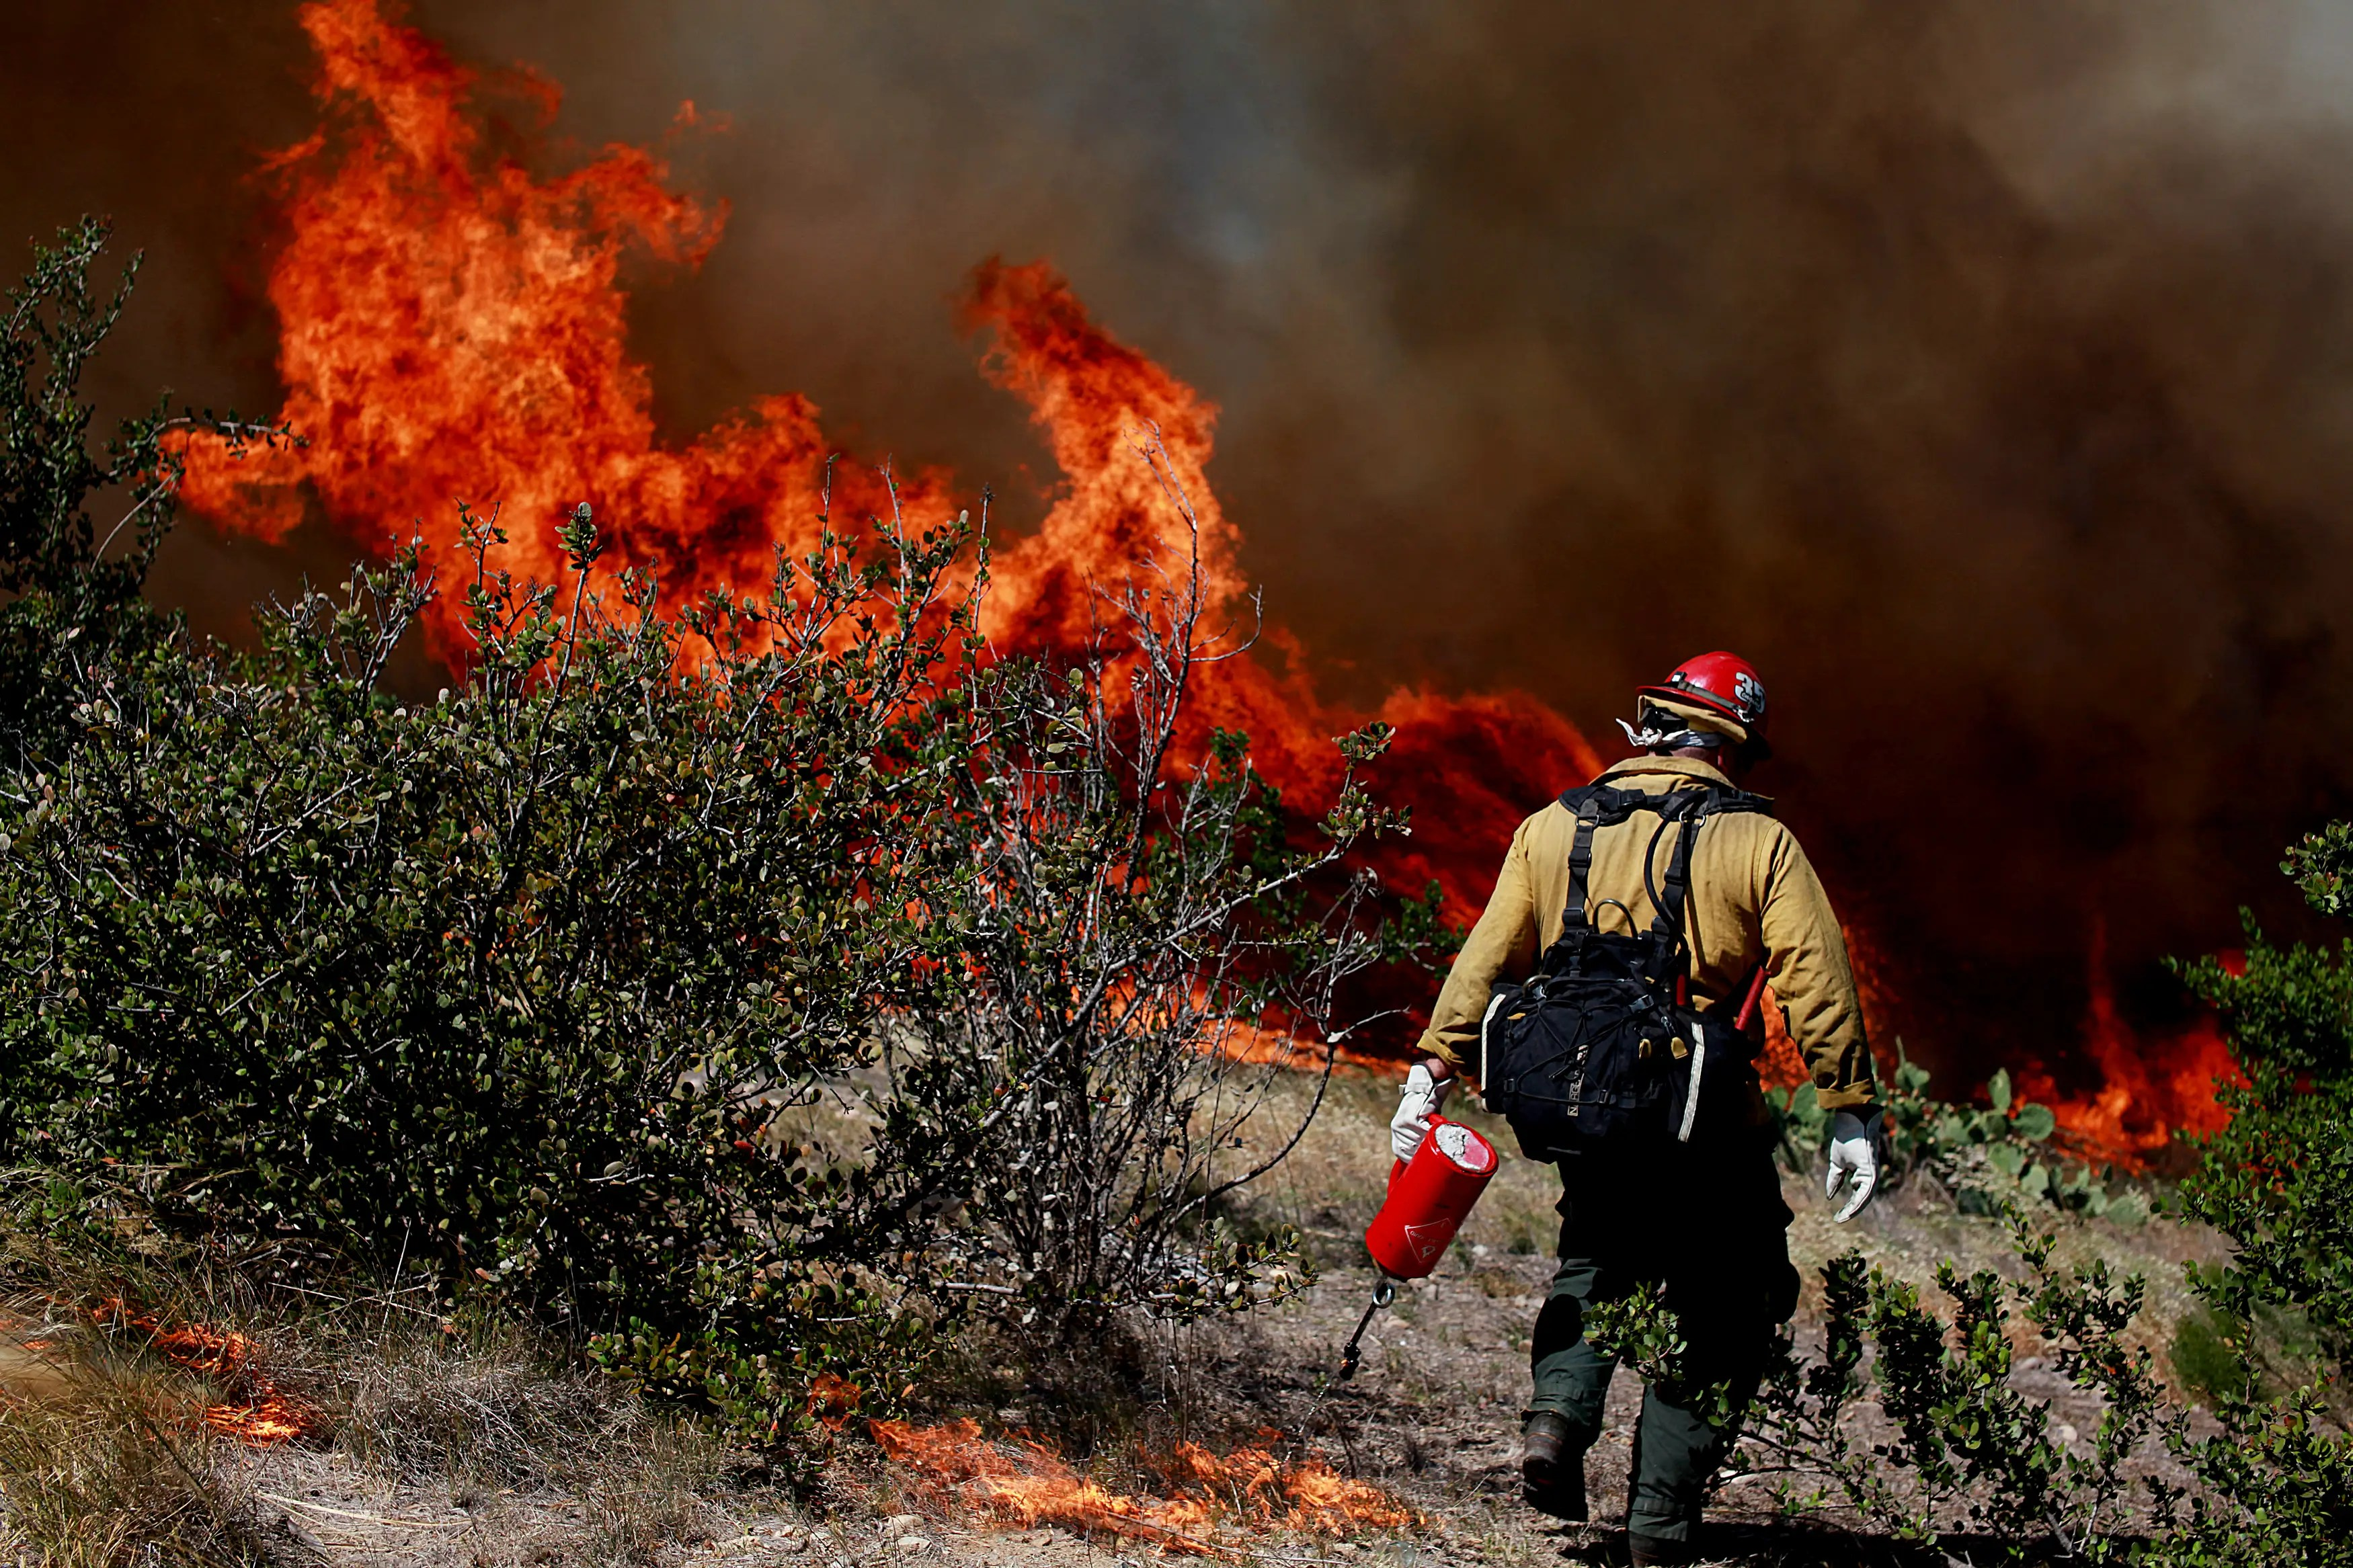 California's drought is leading to dangerous wildfires, like this one near San Diego in May.